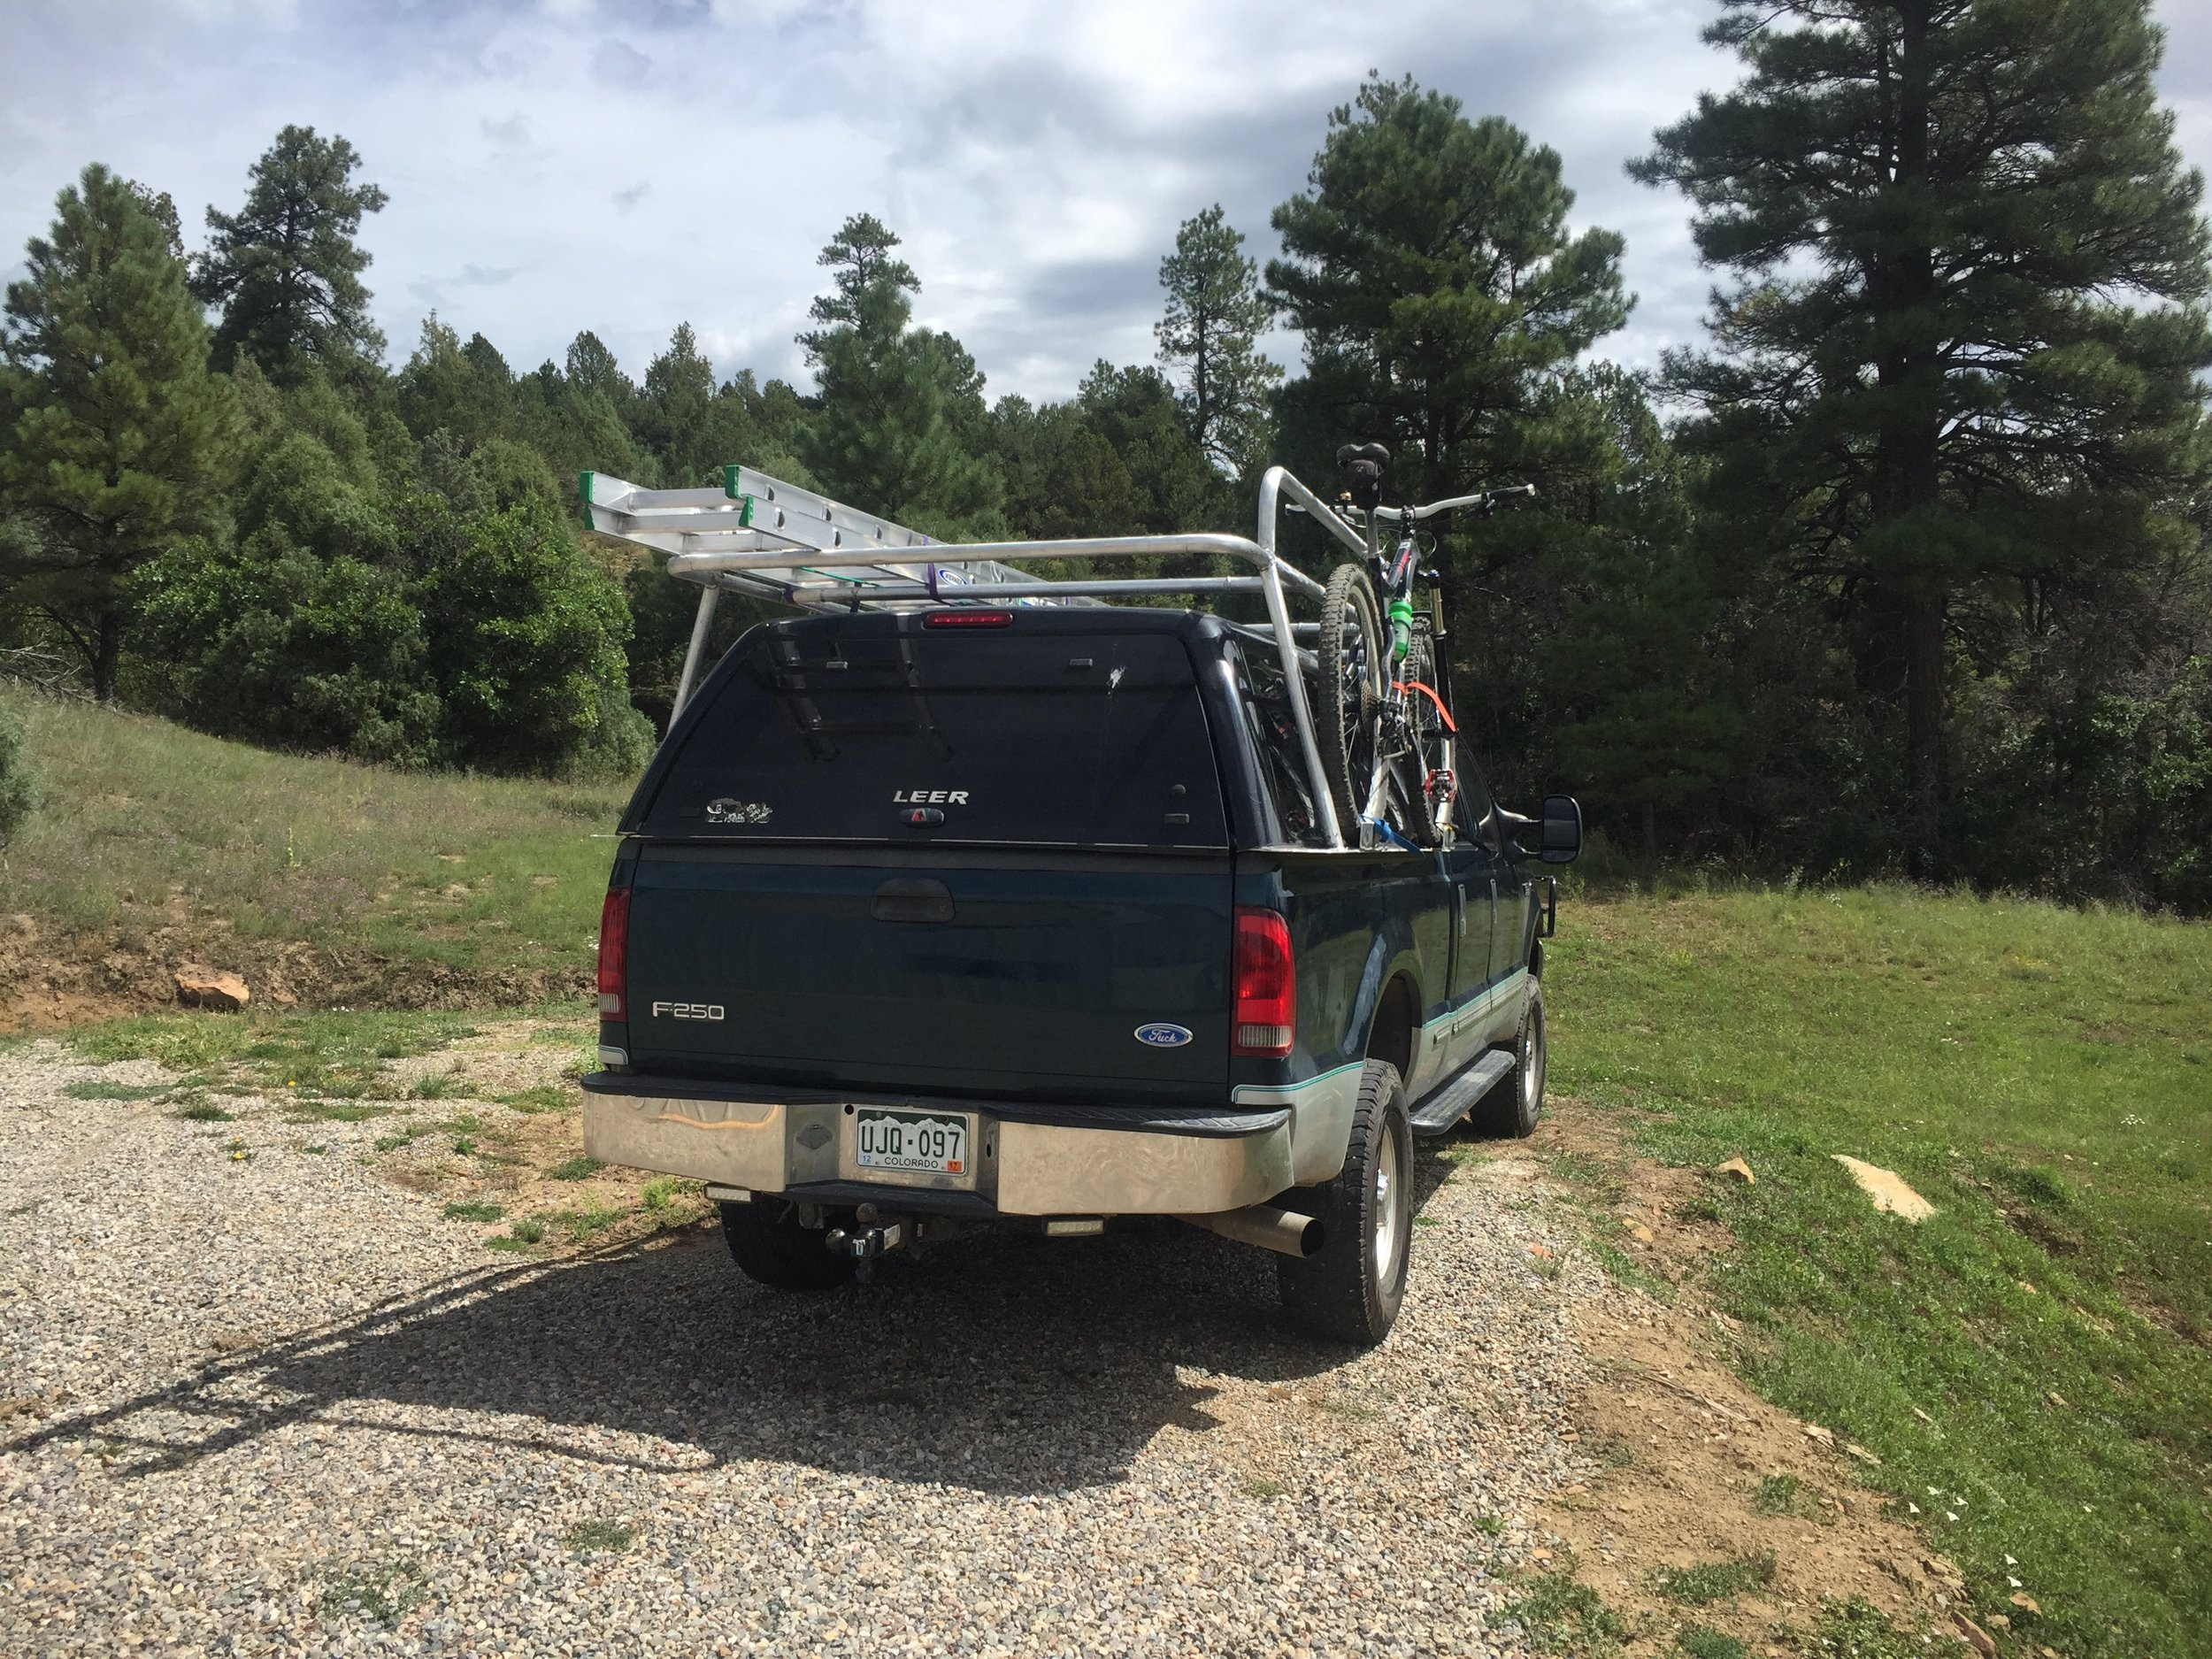 RACKS - Dial in your truck/van/bus for work and play. Whether its 4 sections of scaffolding or 2 bikes and 5 kayaks we have a rack design to meet your needs. Both steel and aluminum options available.